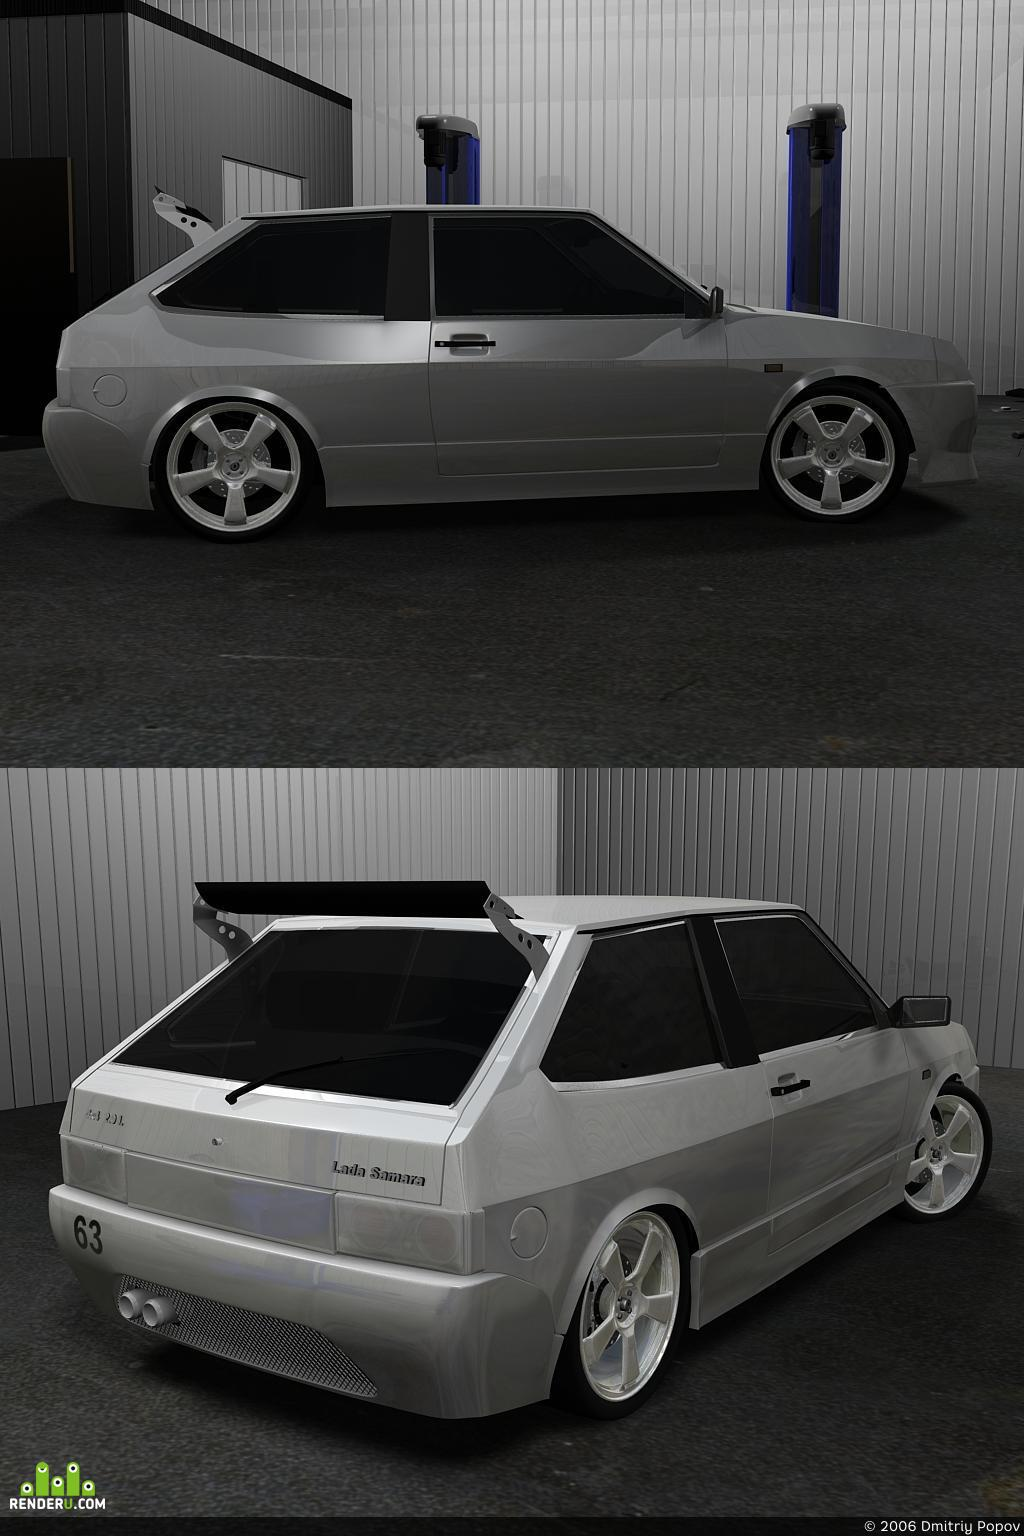 preview 2108 Tuning version.